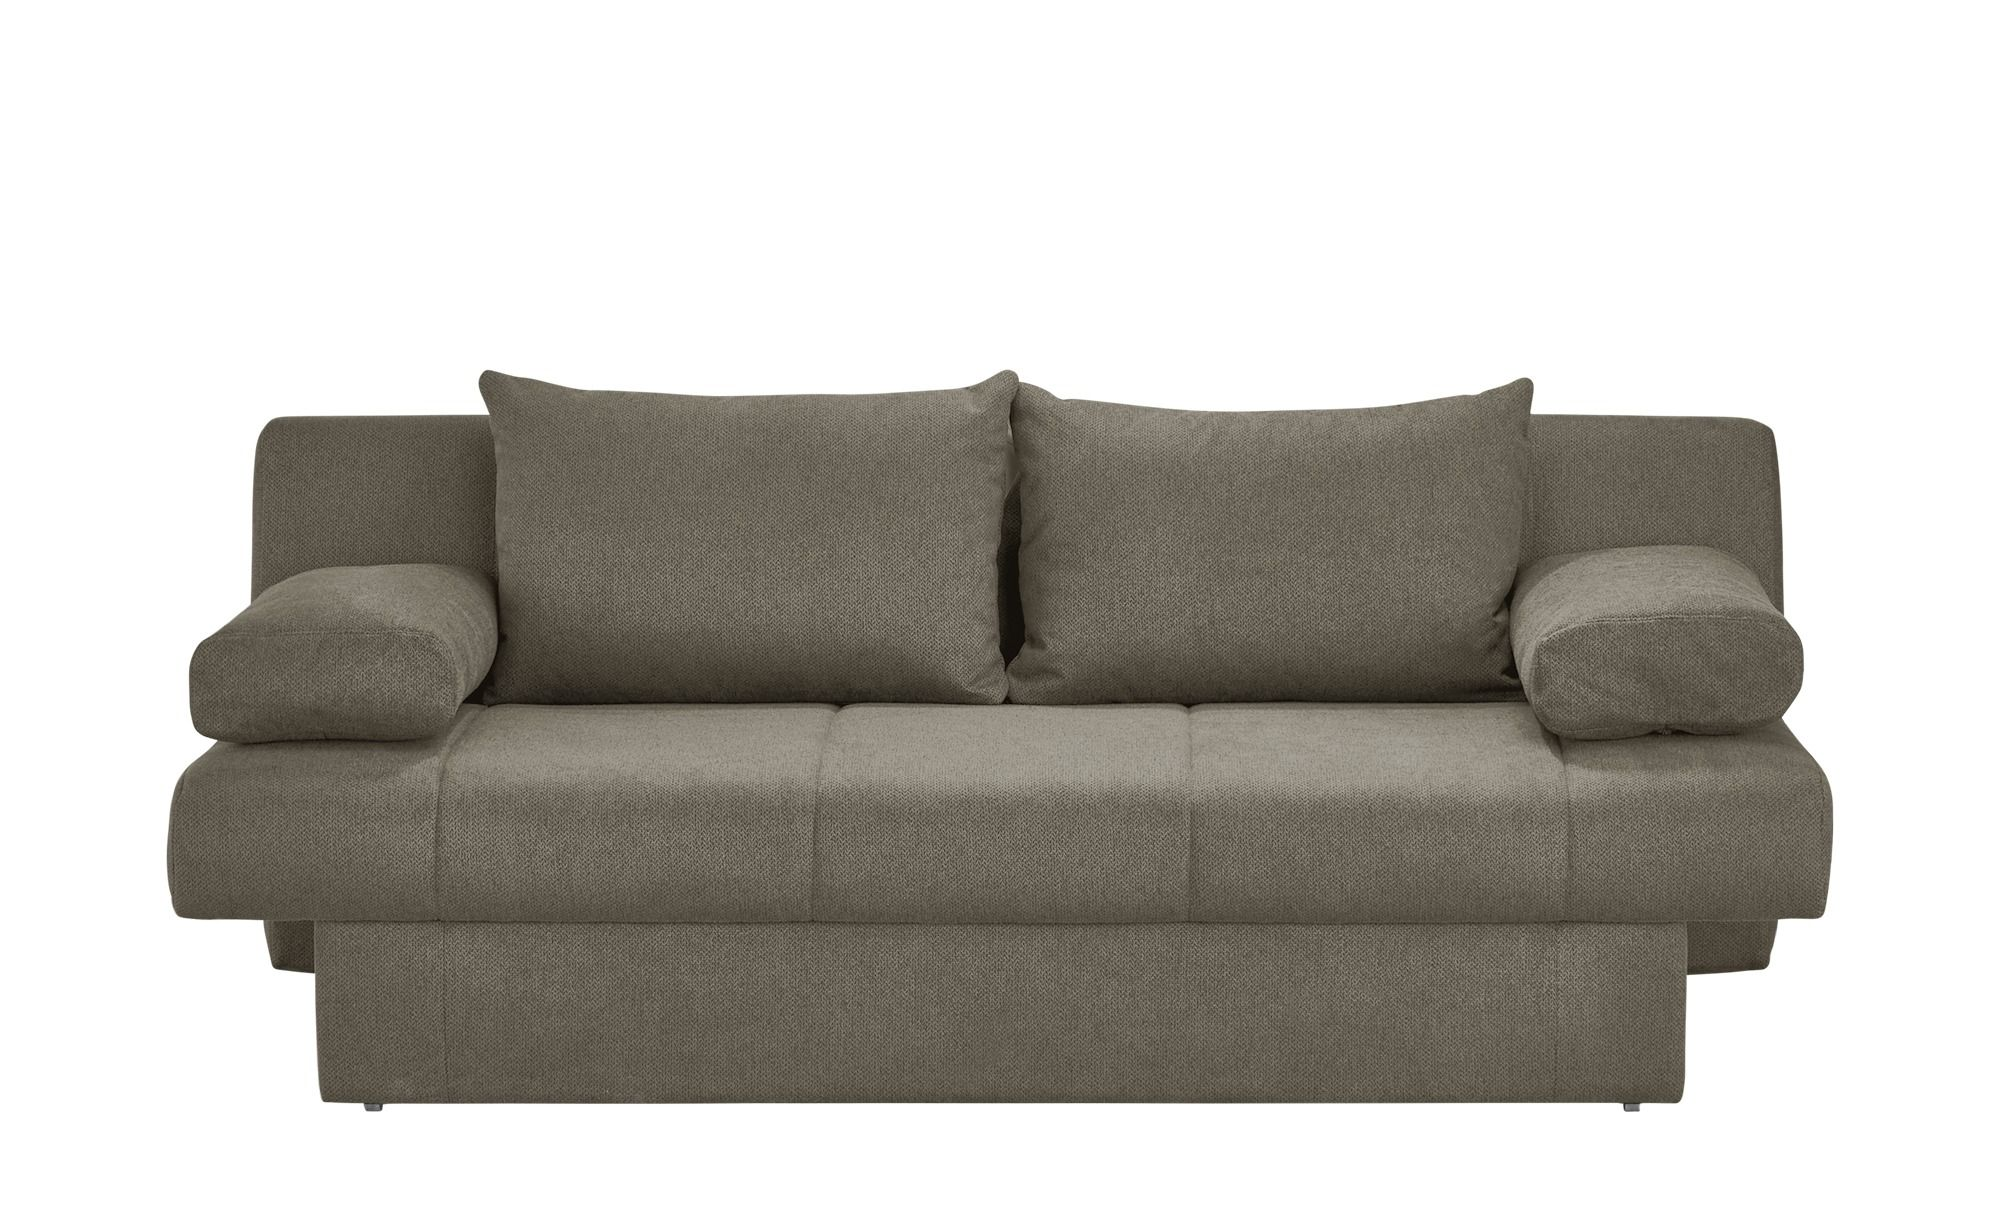 Himolla Ecksofa Leder Sofas Gnstig Best Interior Furniture